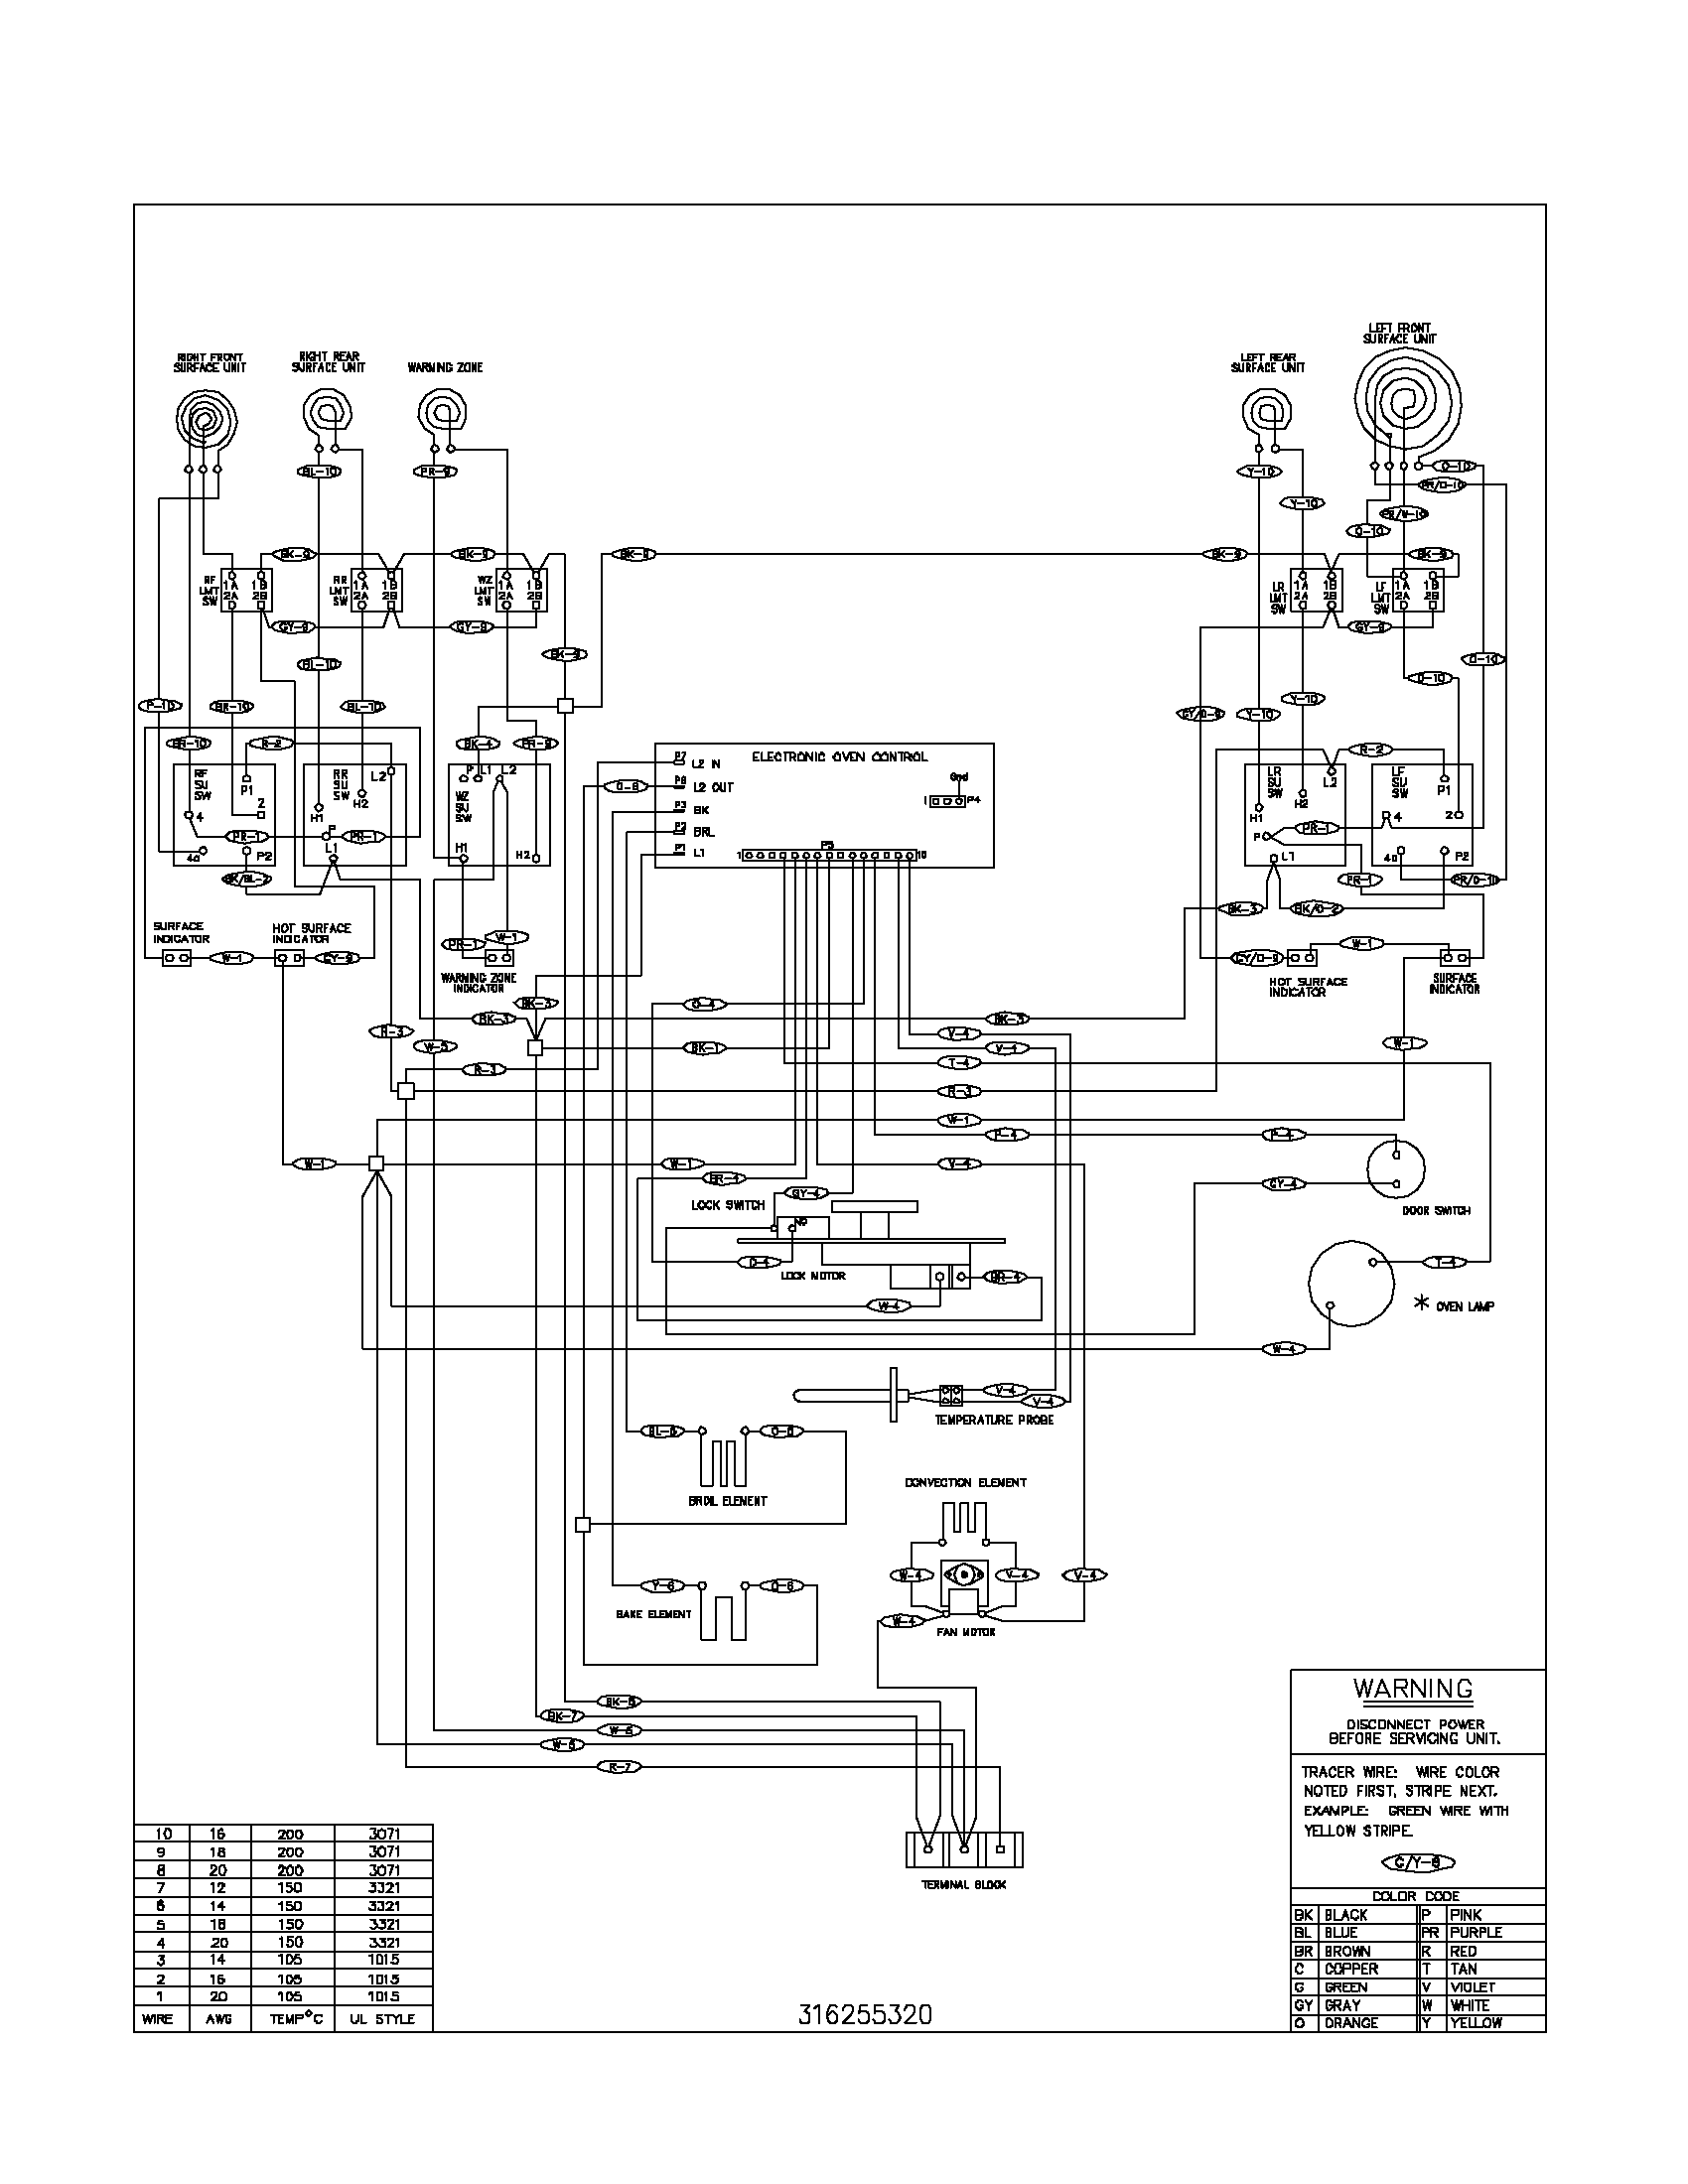 wiring diagram parts whirlpool fefl88acc electric range timer stove clocks and whirlpool dishwasher wiring diagram at creativeand.co